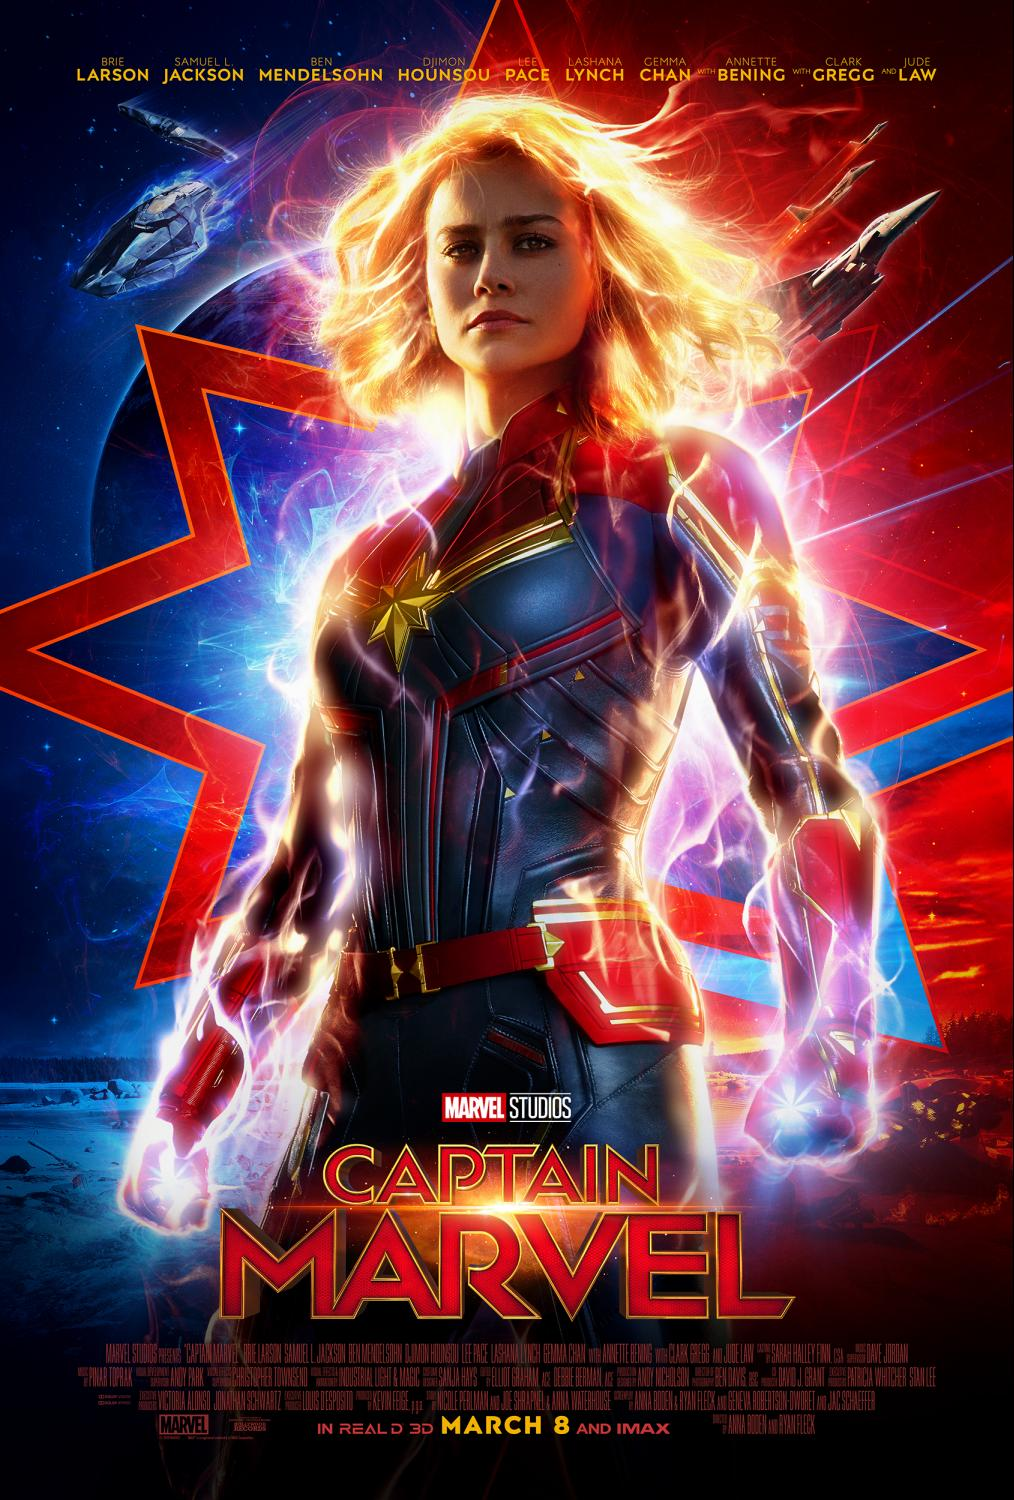 Marvel Studios' Captain Marvel released today in theaters. The Sidekick staff writer Neha Desaraju praises the movie for its accomplishments in developing a strong female lead.